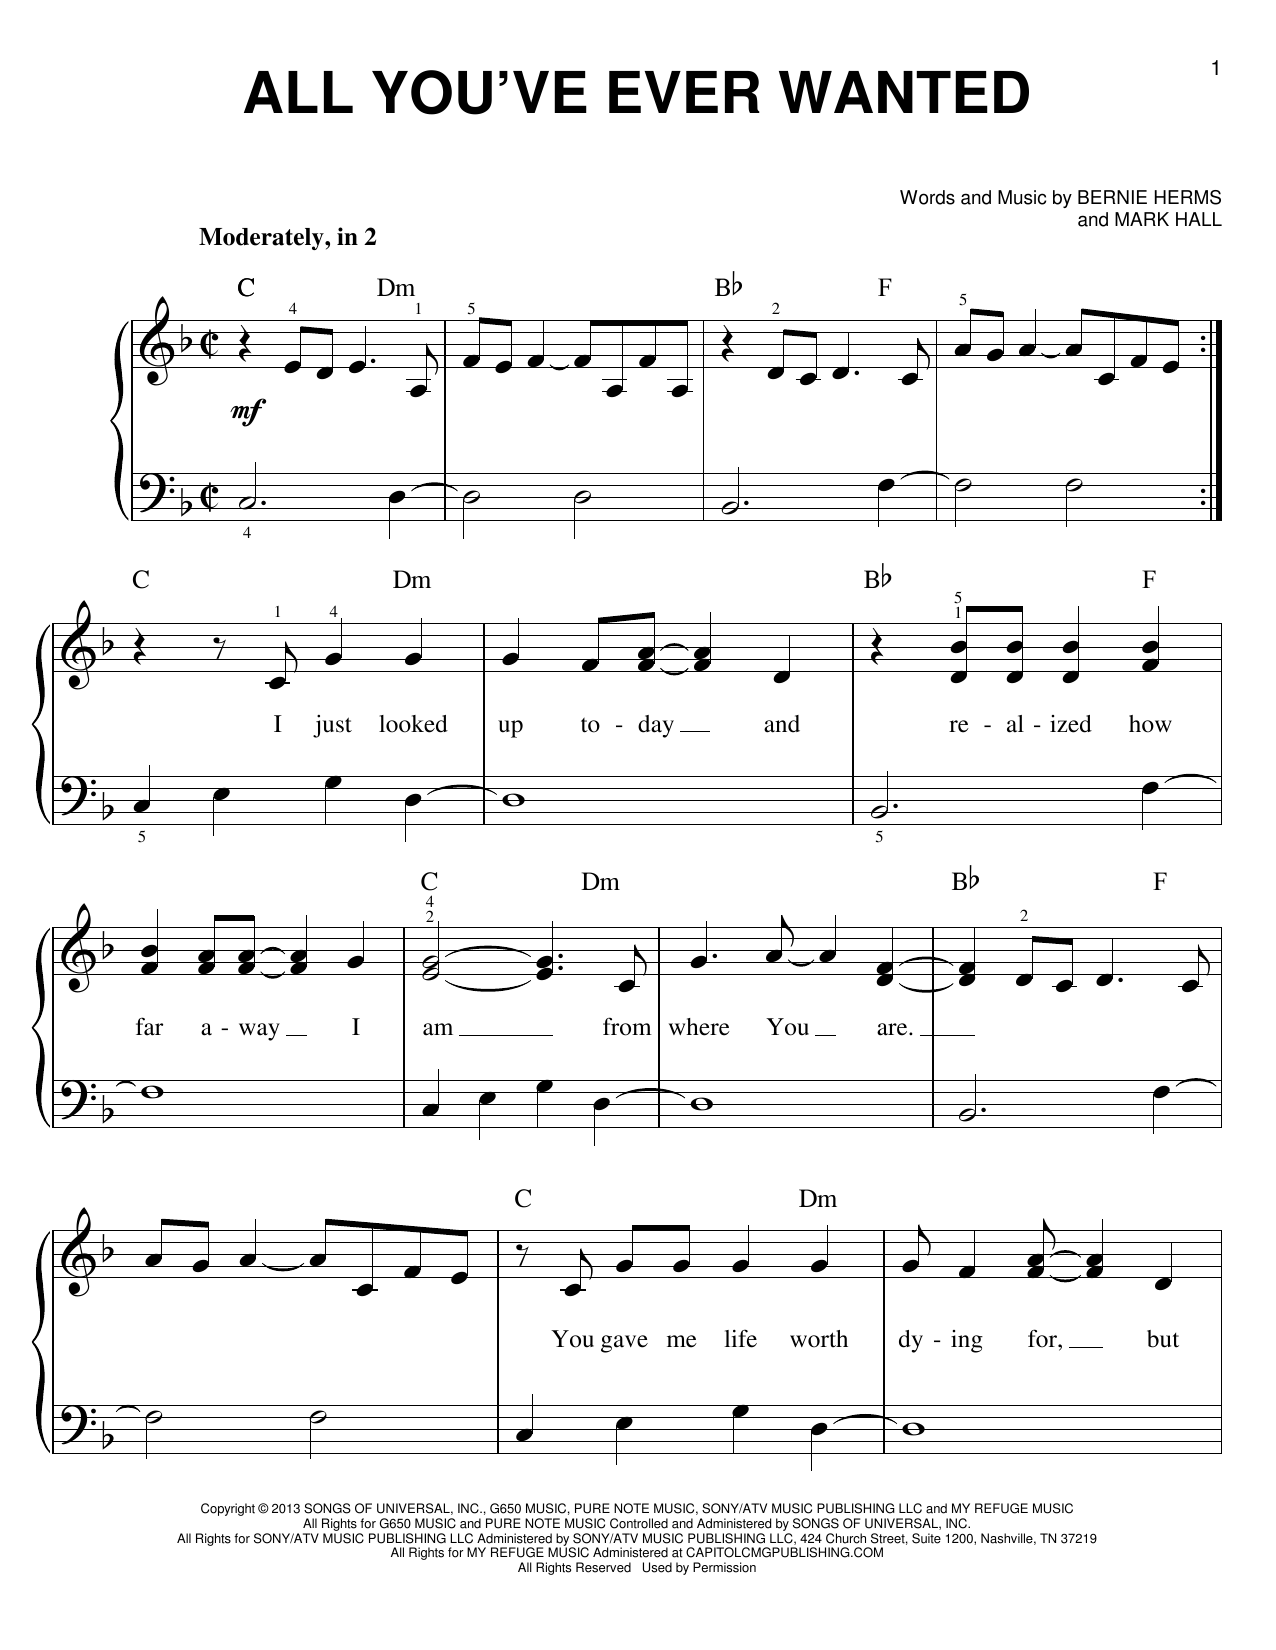 All You've Ever Wanted Sheet Music